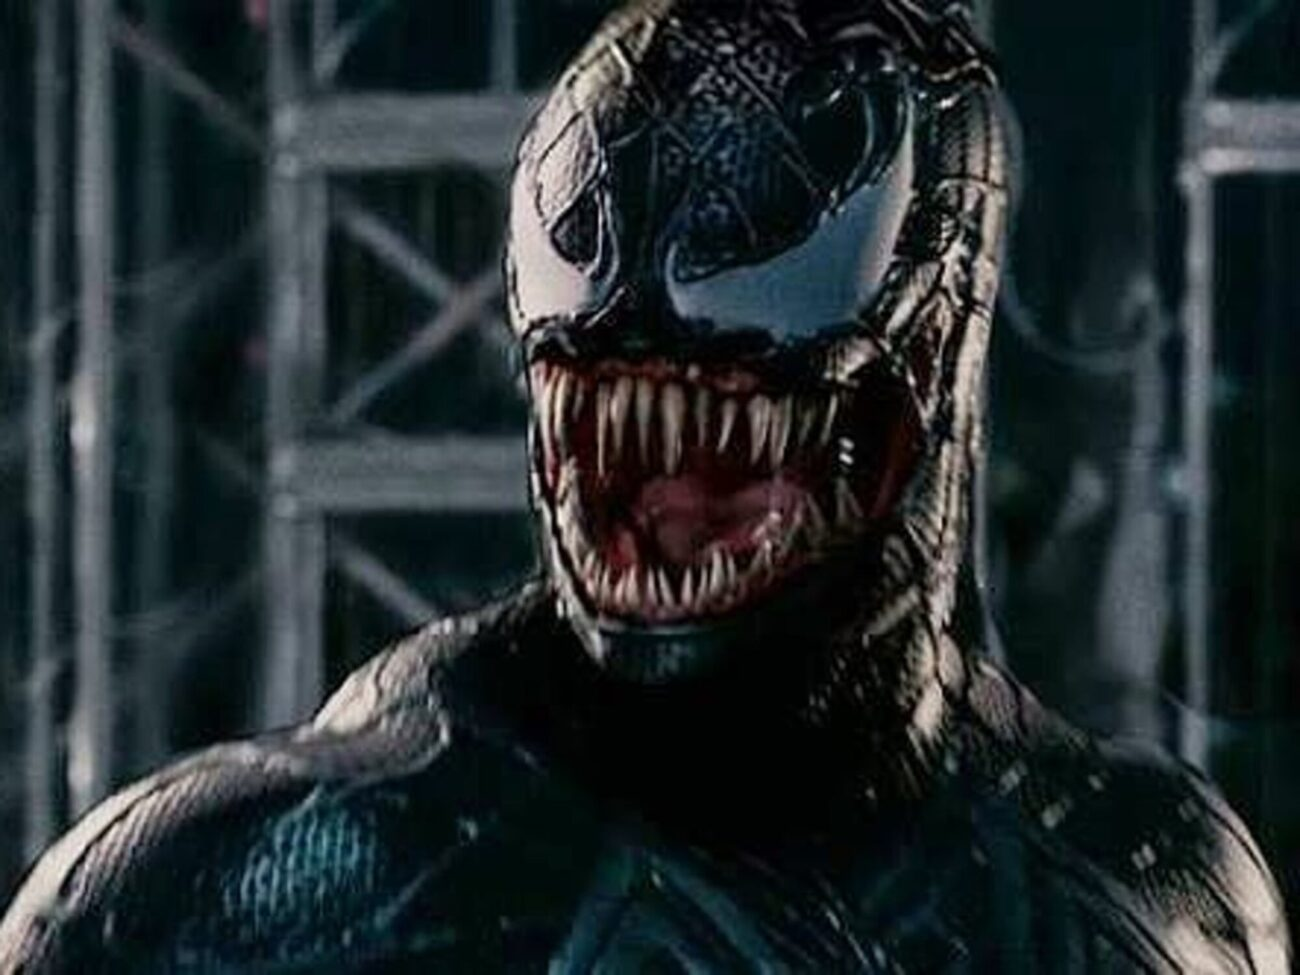 An upcoming movie that features Spider-Man and Venom battling it out only makes perfect sense. Could Tom Hardy make this movie happen?